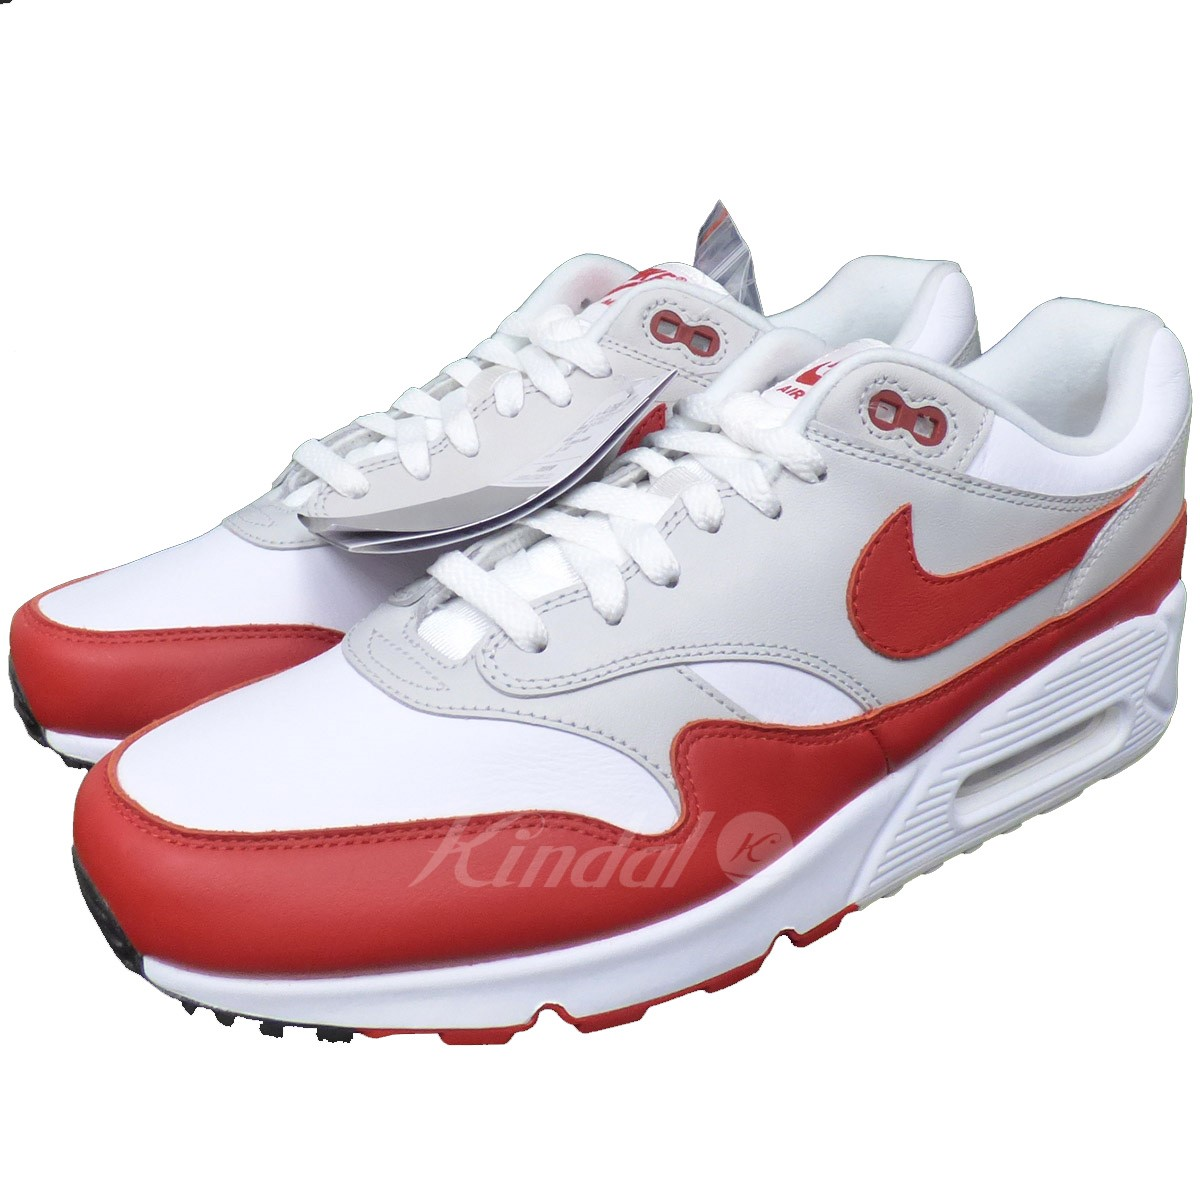 separation shoes 37a14 46349 NIKE AIR MAX 901 air max 90 sneakers red X white size US10. 5 (28.5cm) ( Nike)